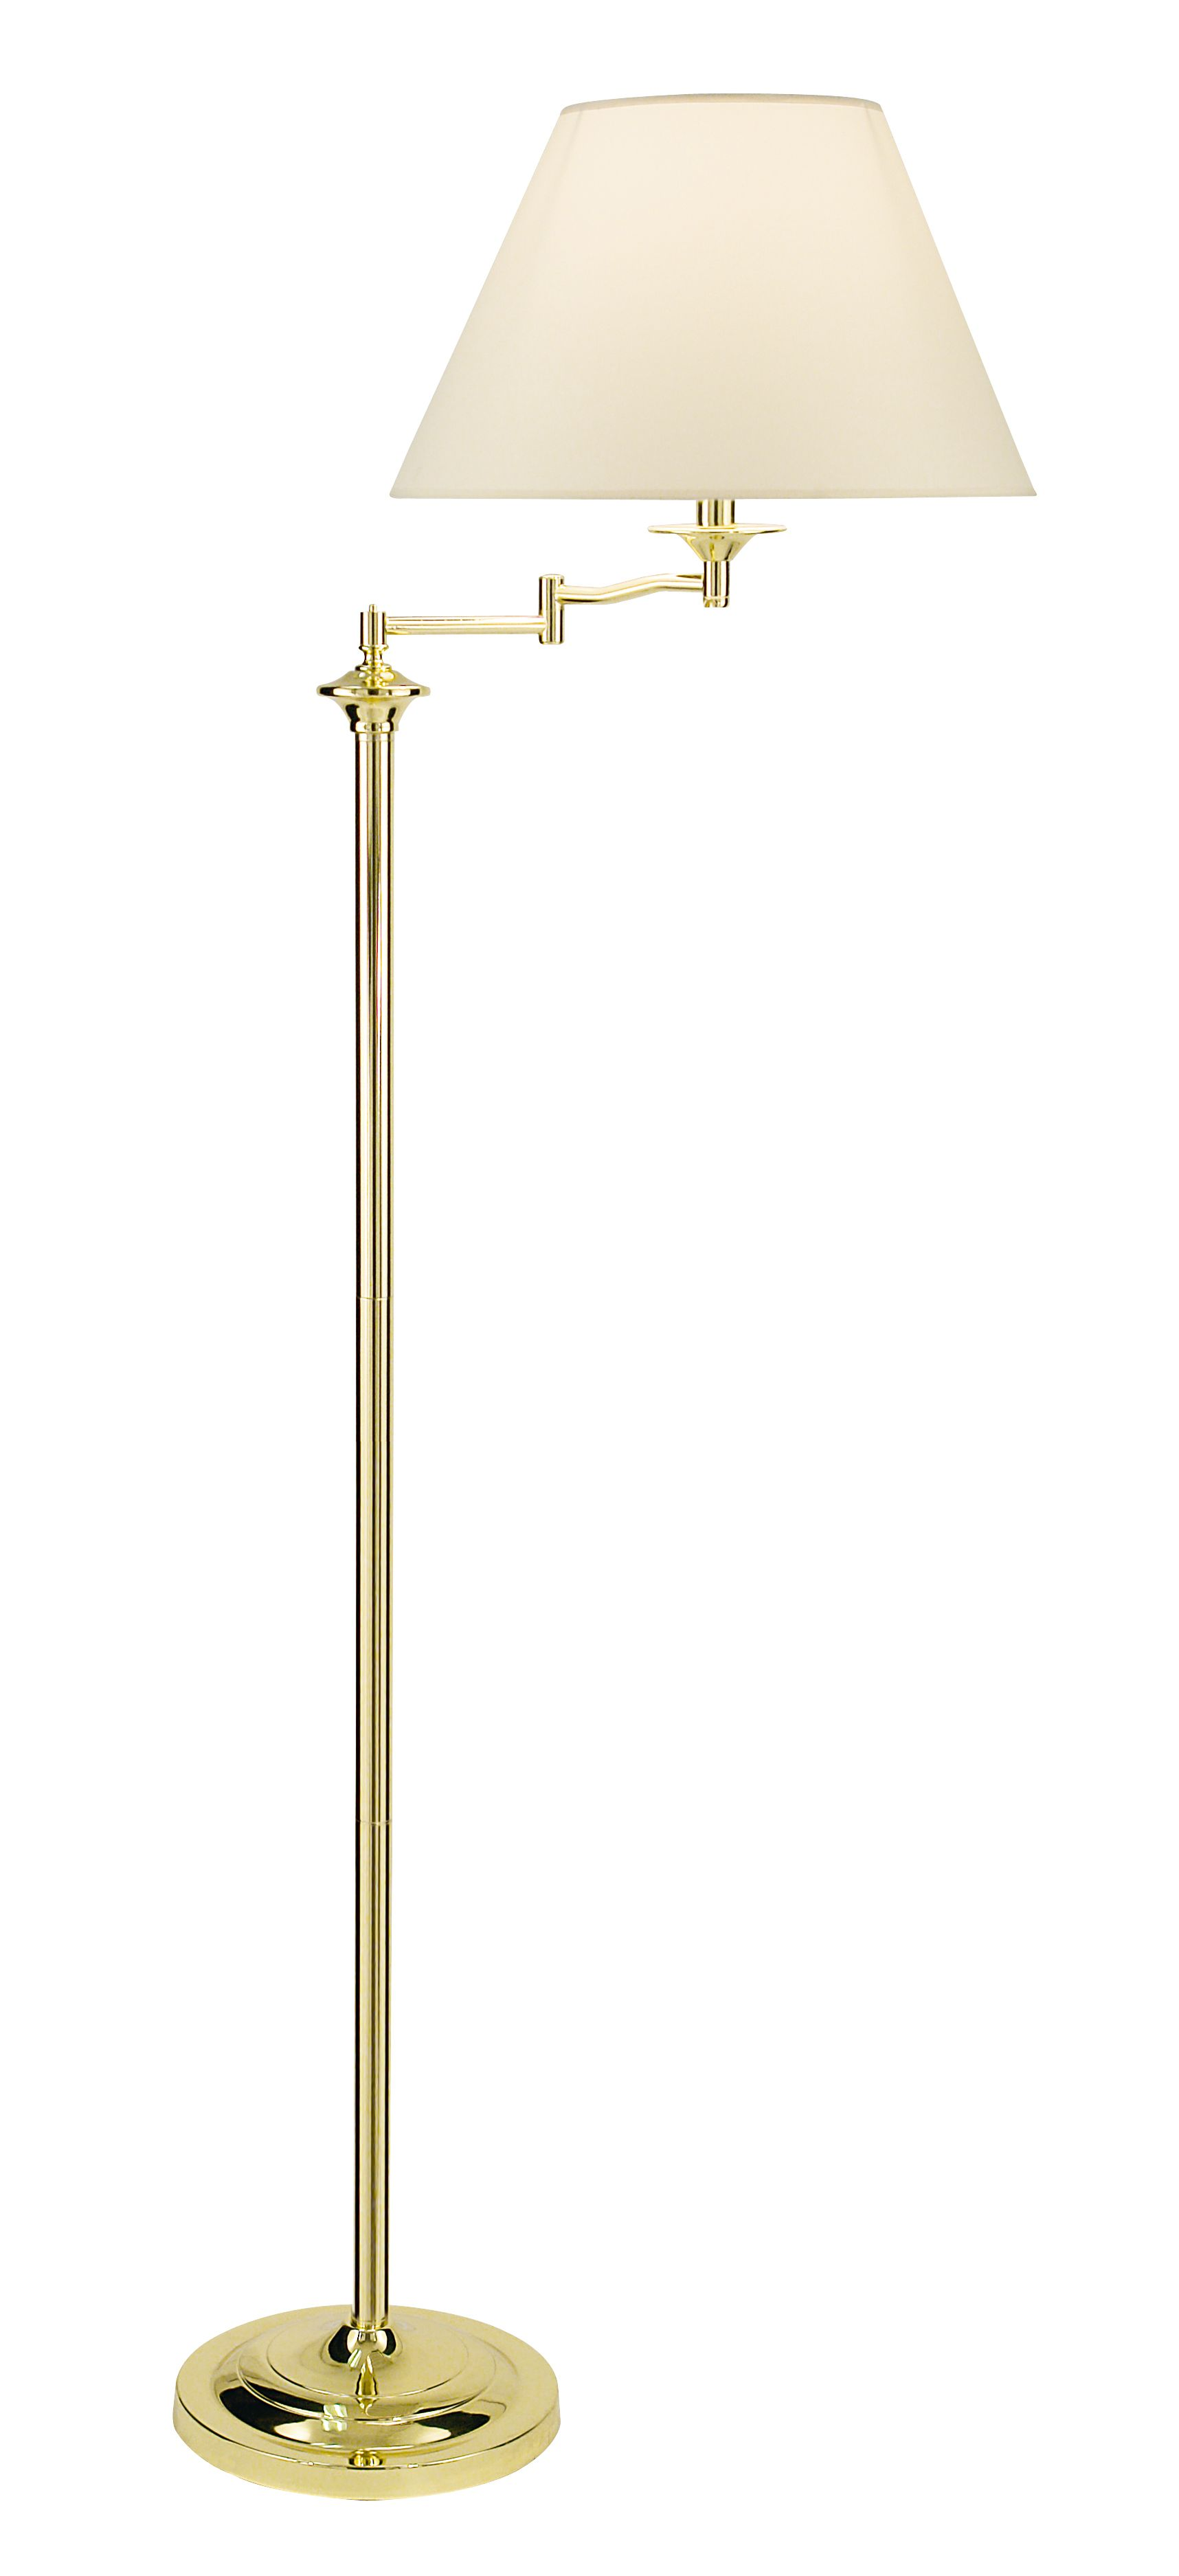 House of fraser alex swing arm floor lamp polished brass for Buy floor lamp online